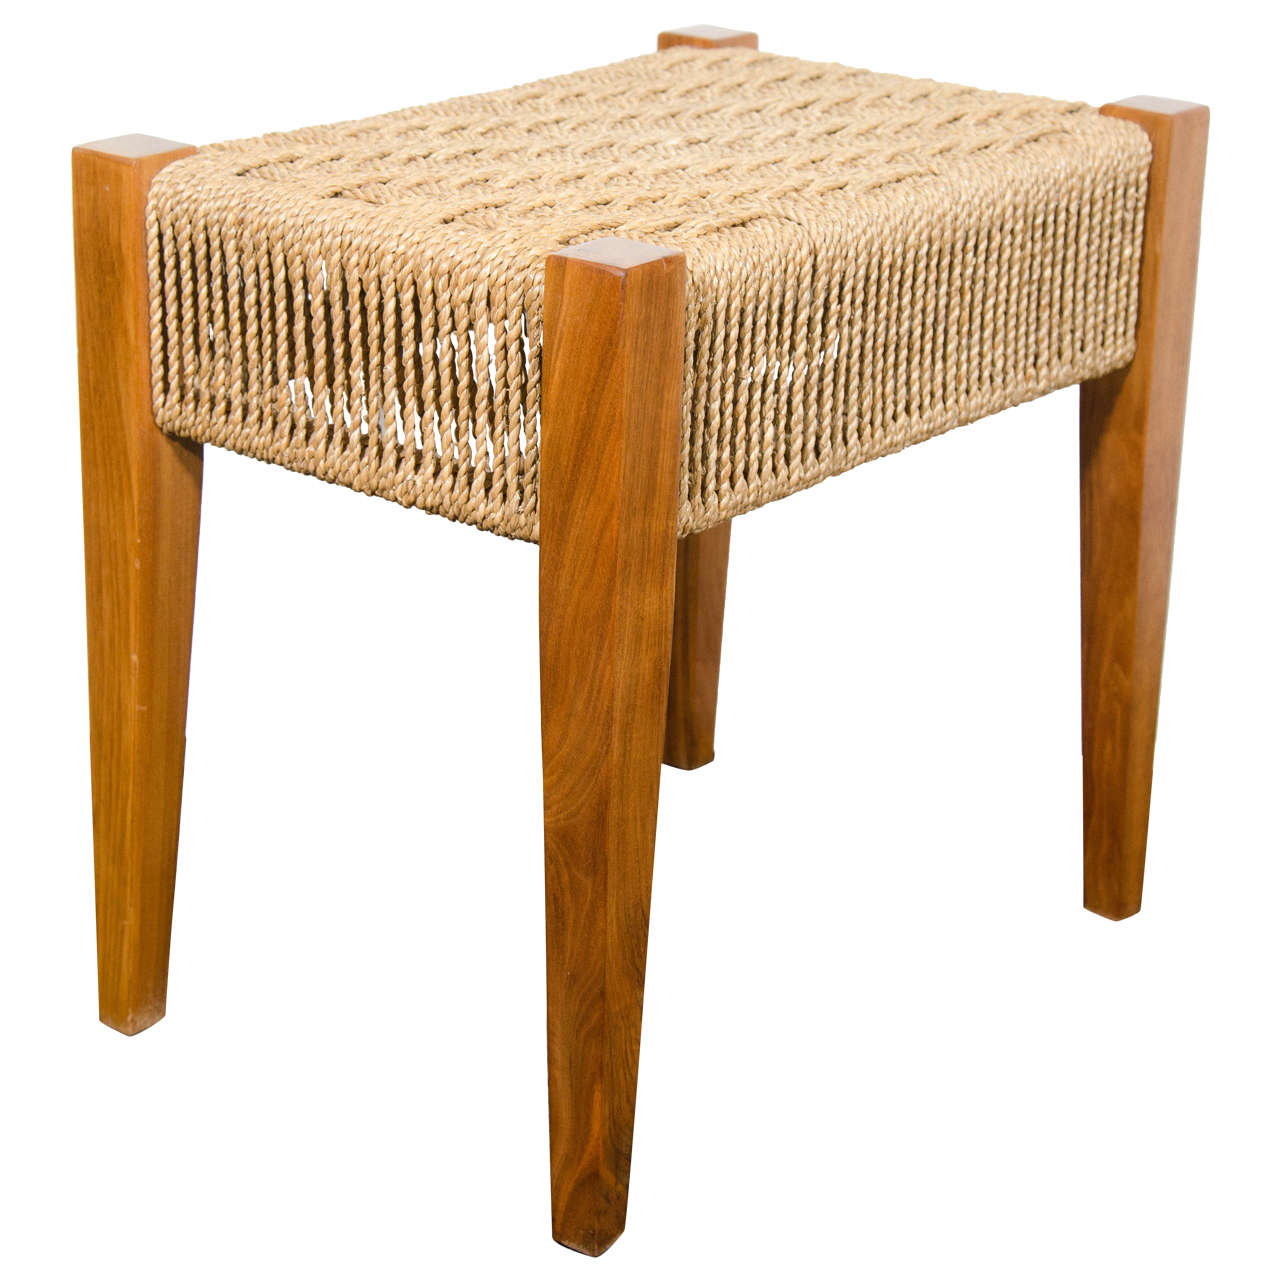 Midcentury Walnut Bench With Woven Rope Seat At 1stdibs